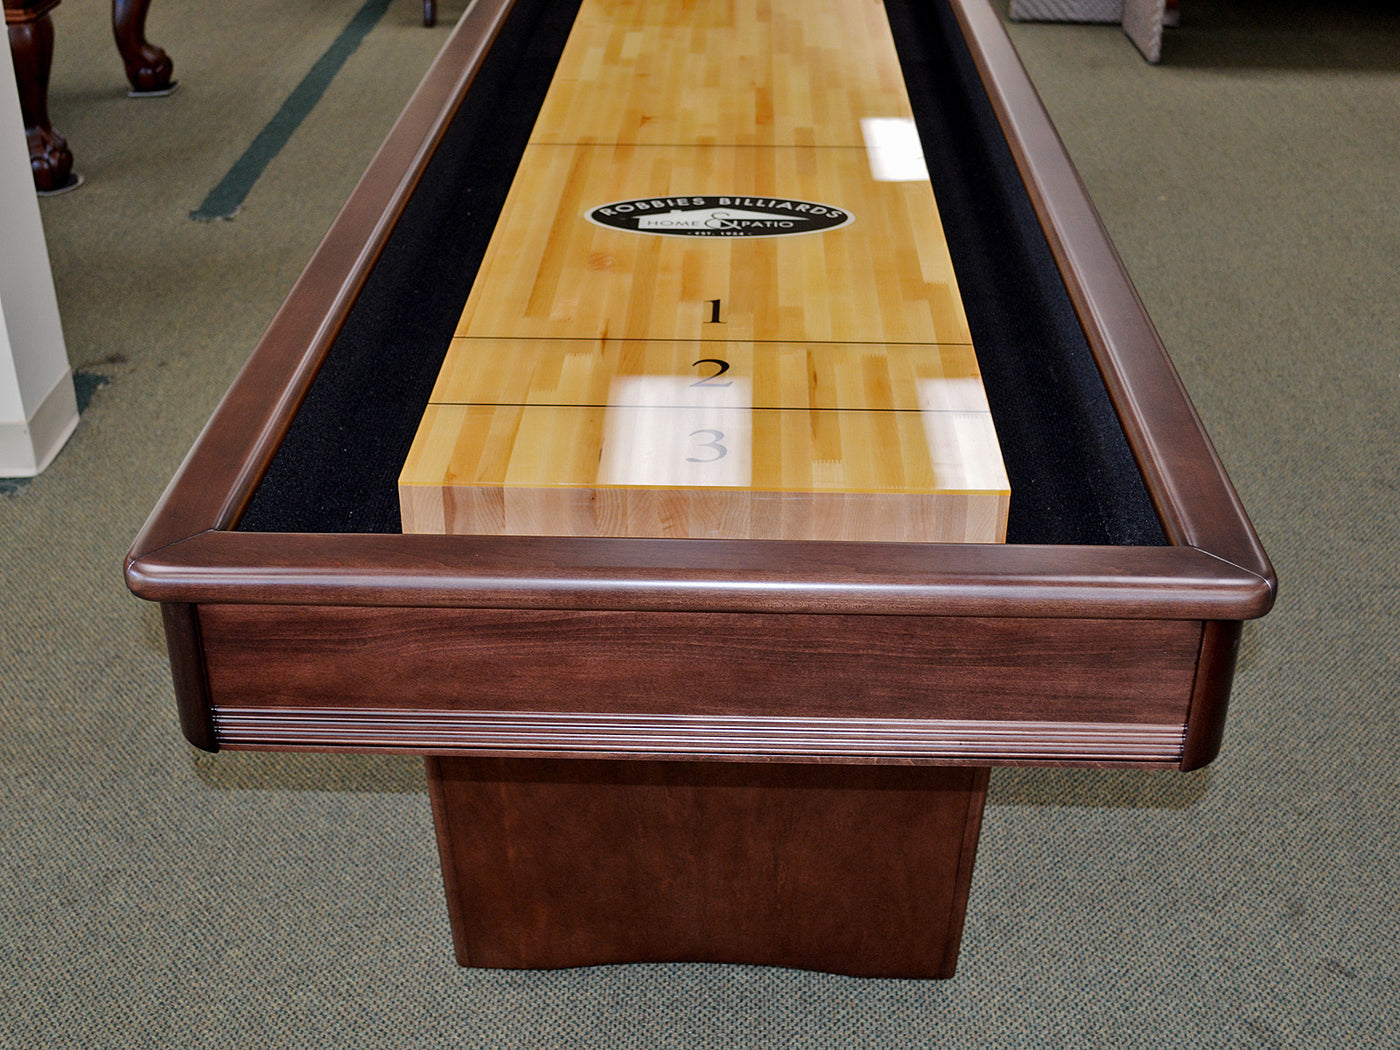 snap back tavern system electronic shuffleboard table scoring feet image with and leg levelers adjustable